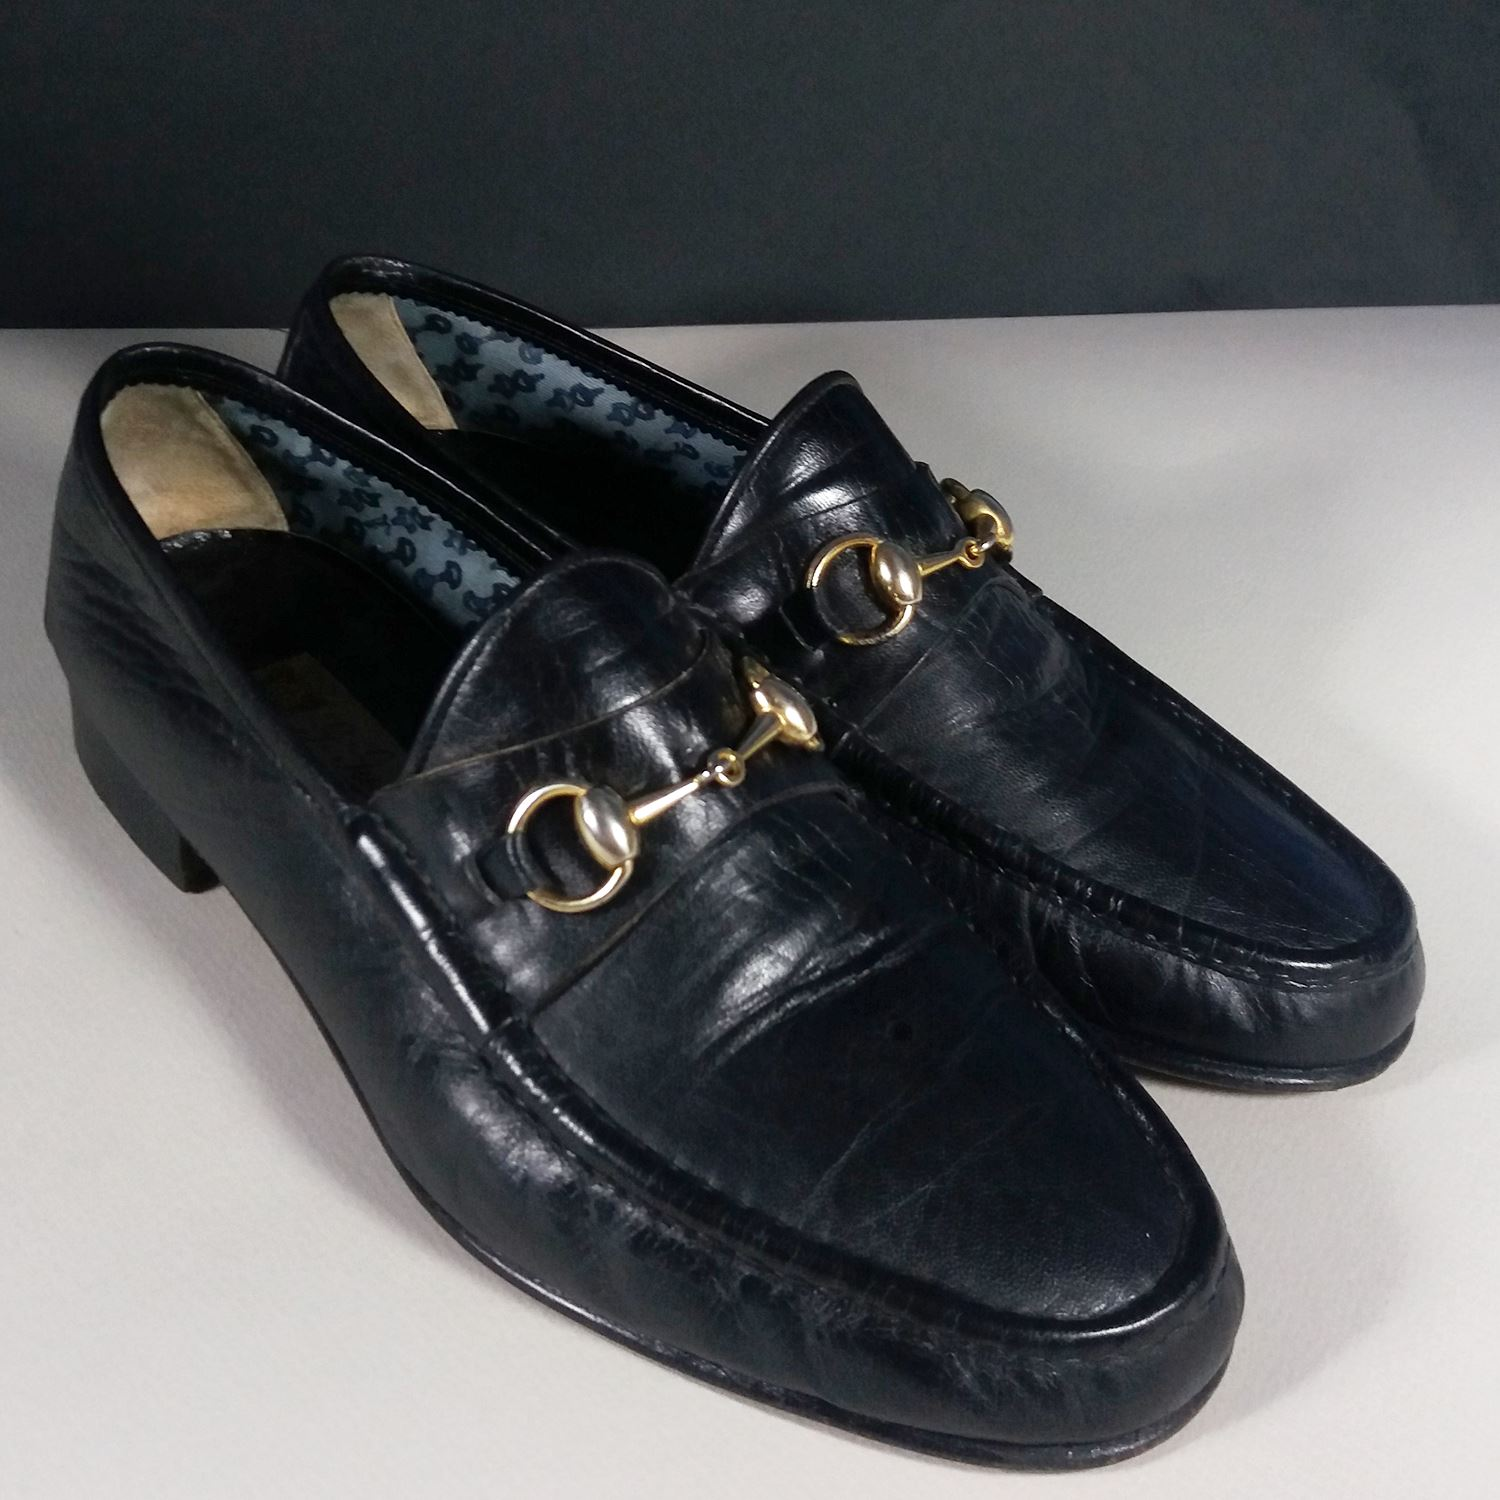 G Gucci GG Men's Black Calfskin Horse Bit 42 1/2 9.5 US Loafers Shoes